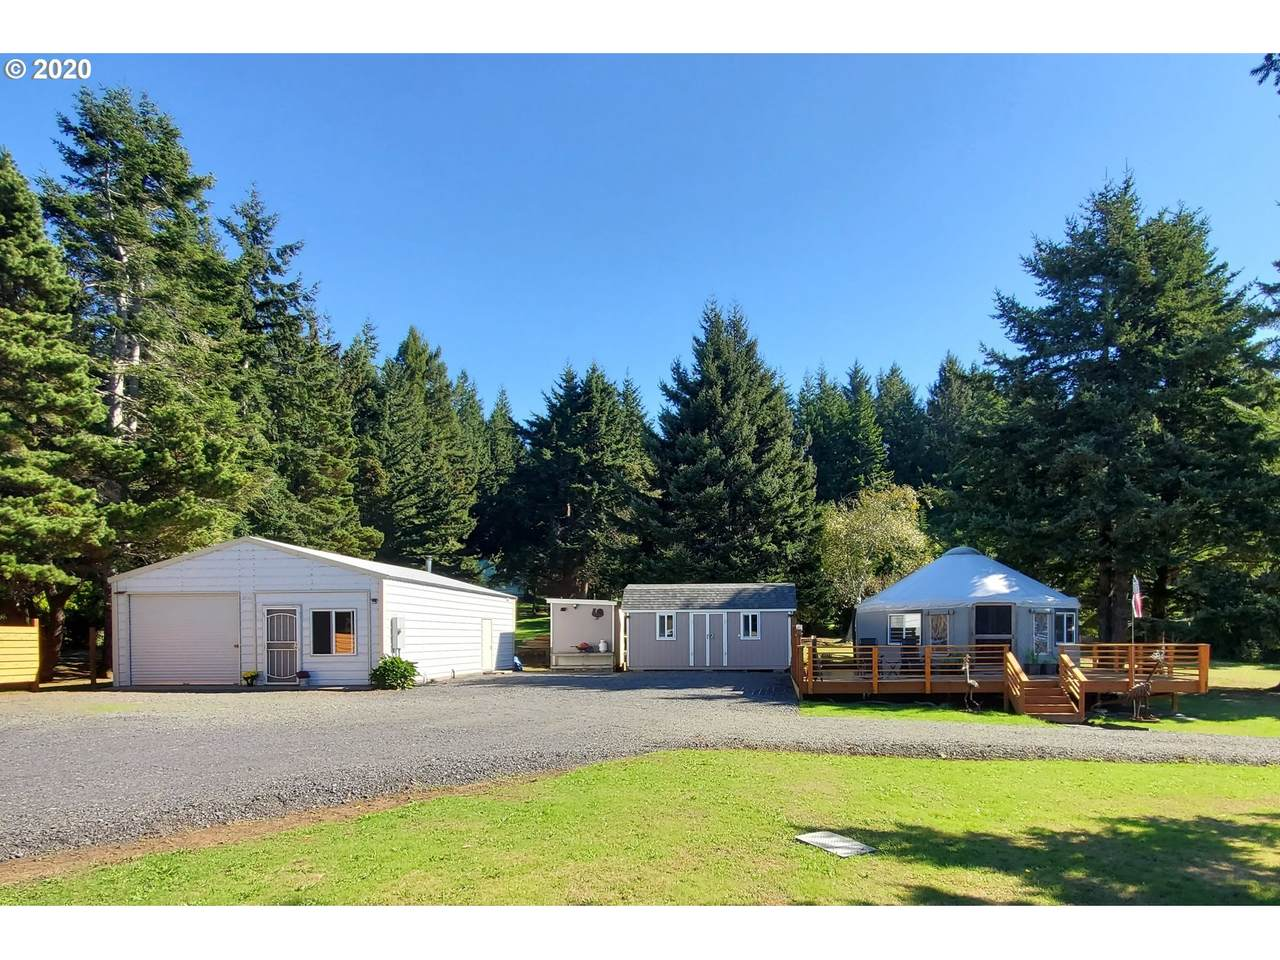 2850 Port Orford Lp Rd - Photo 1